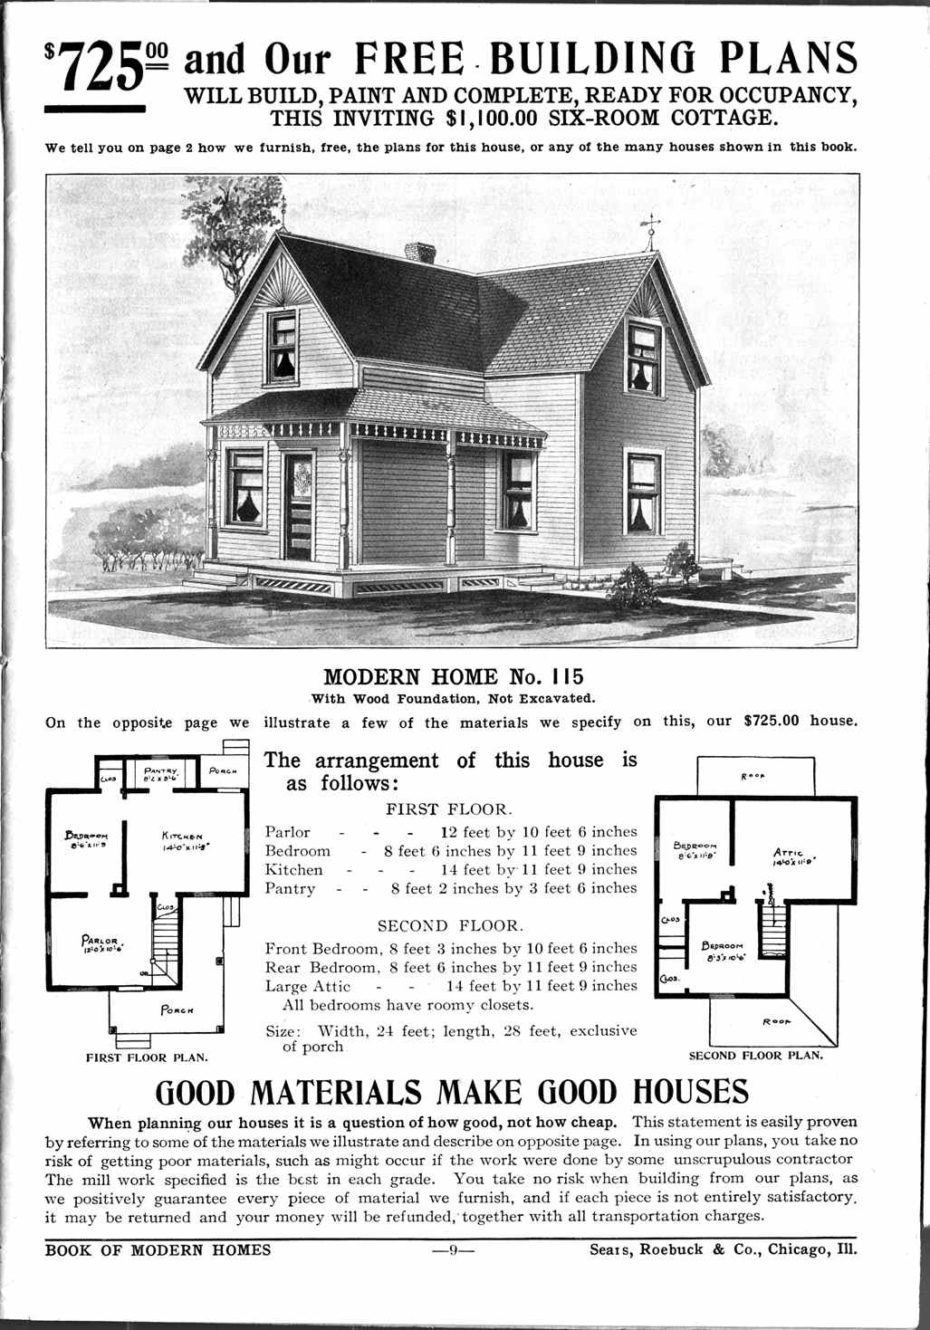 Remember when you could Mail Order an Entire House in a Giant DIY Kit?